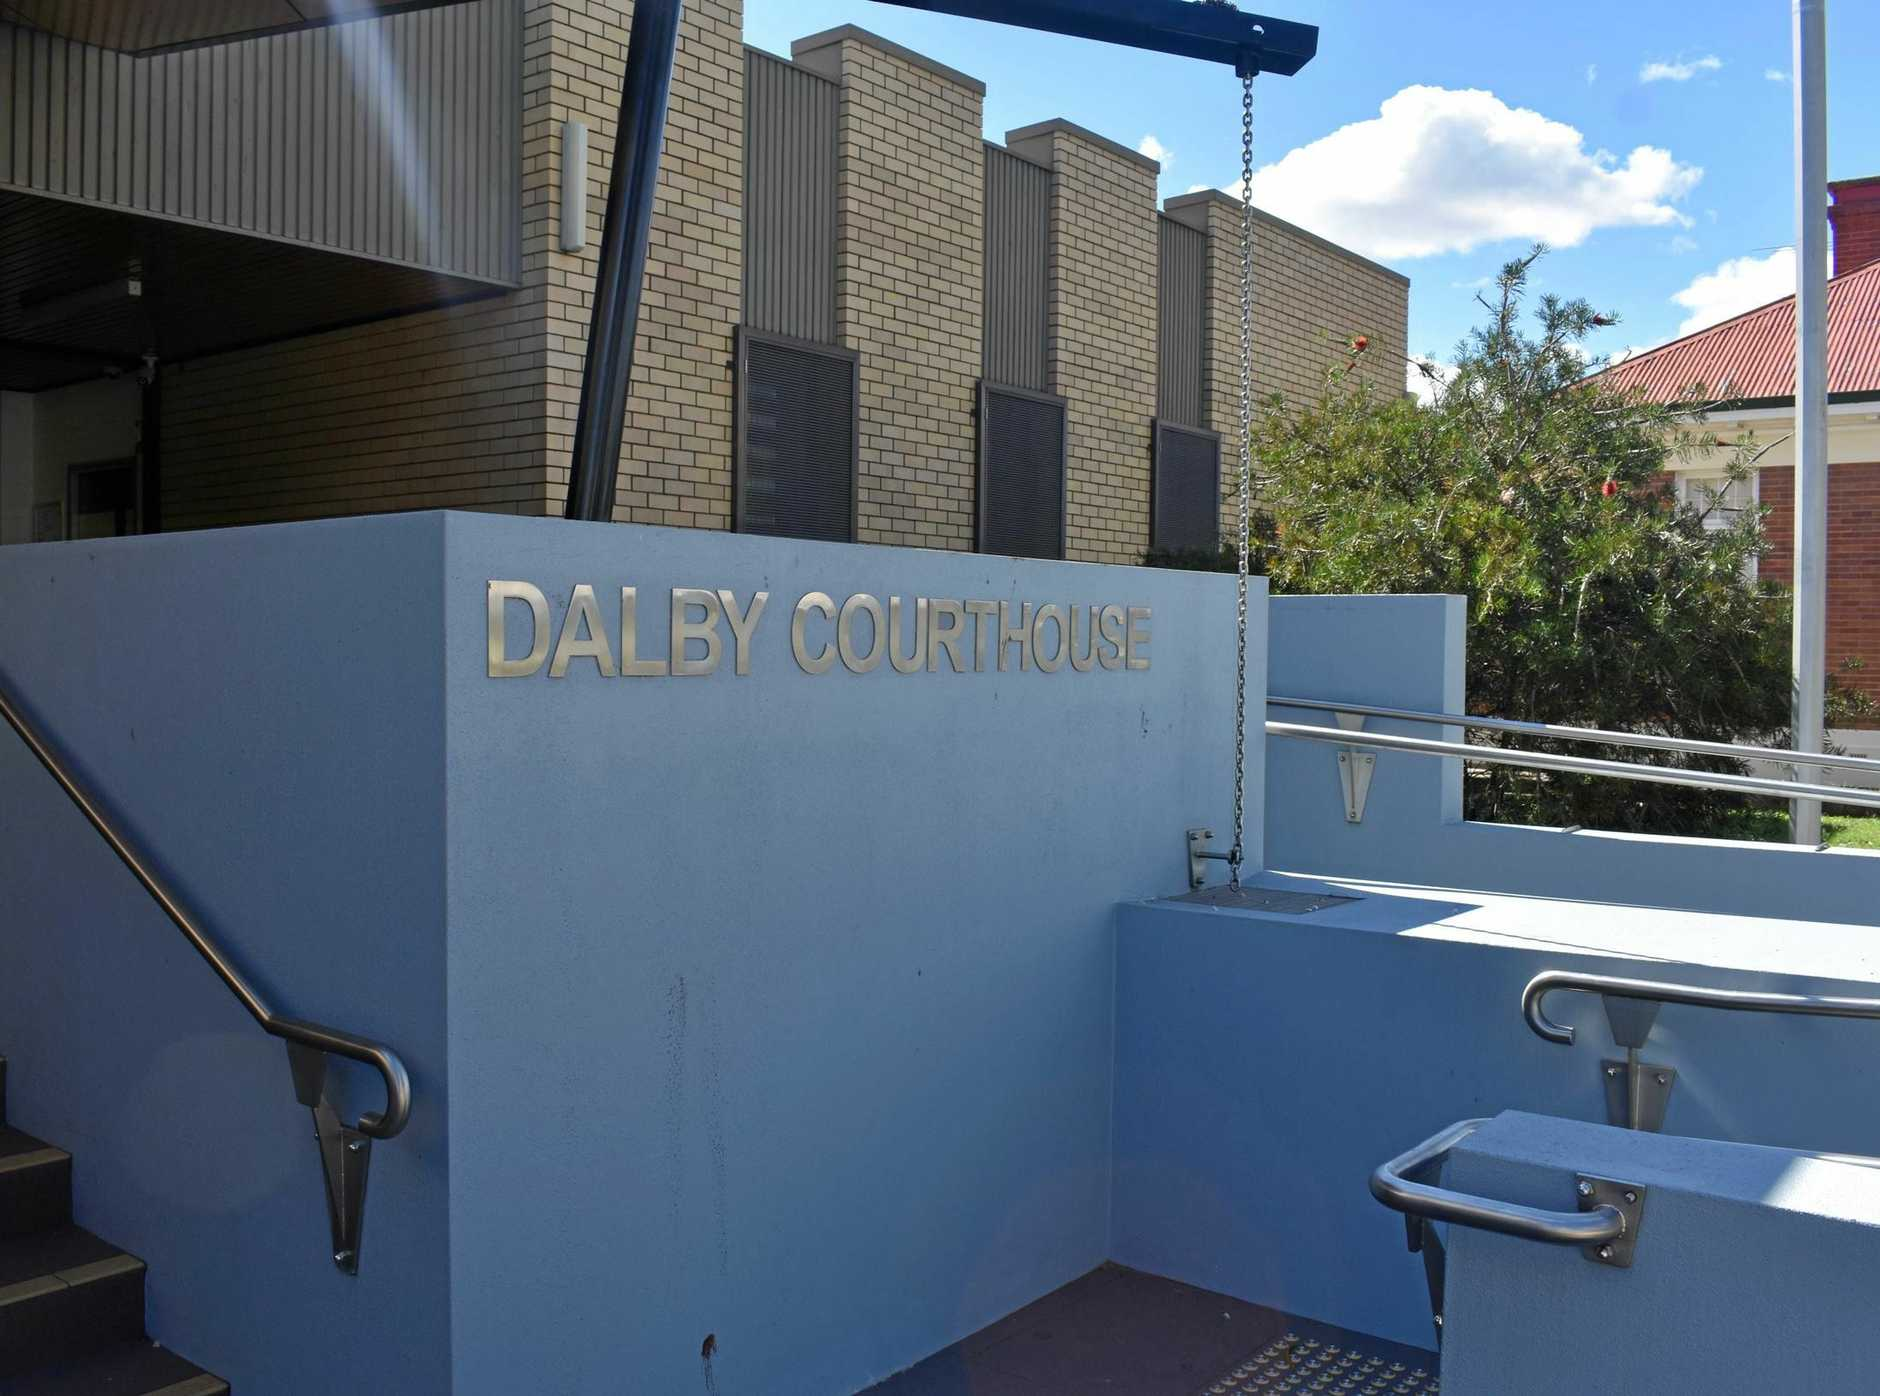 DEFRAUDING: A Bundaberg man has pleaded guilty to swindling motels and hotels across Queensland out of money, in the Dalby Magistrates Court.